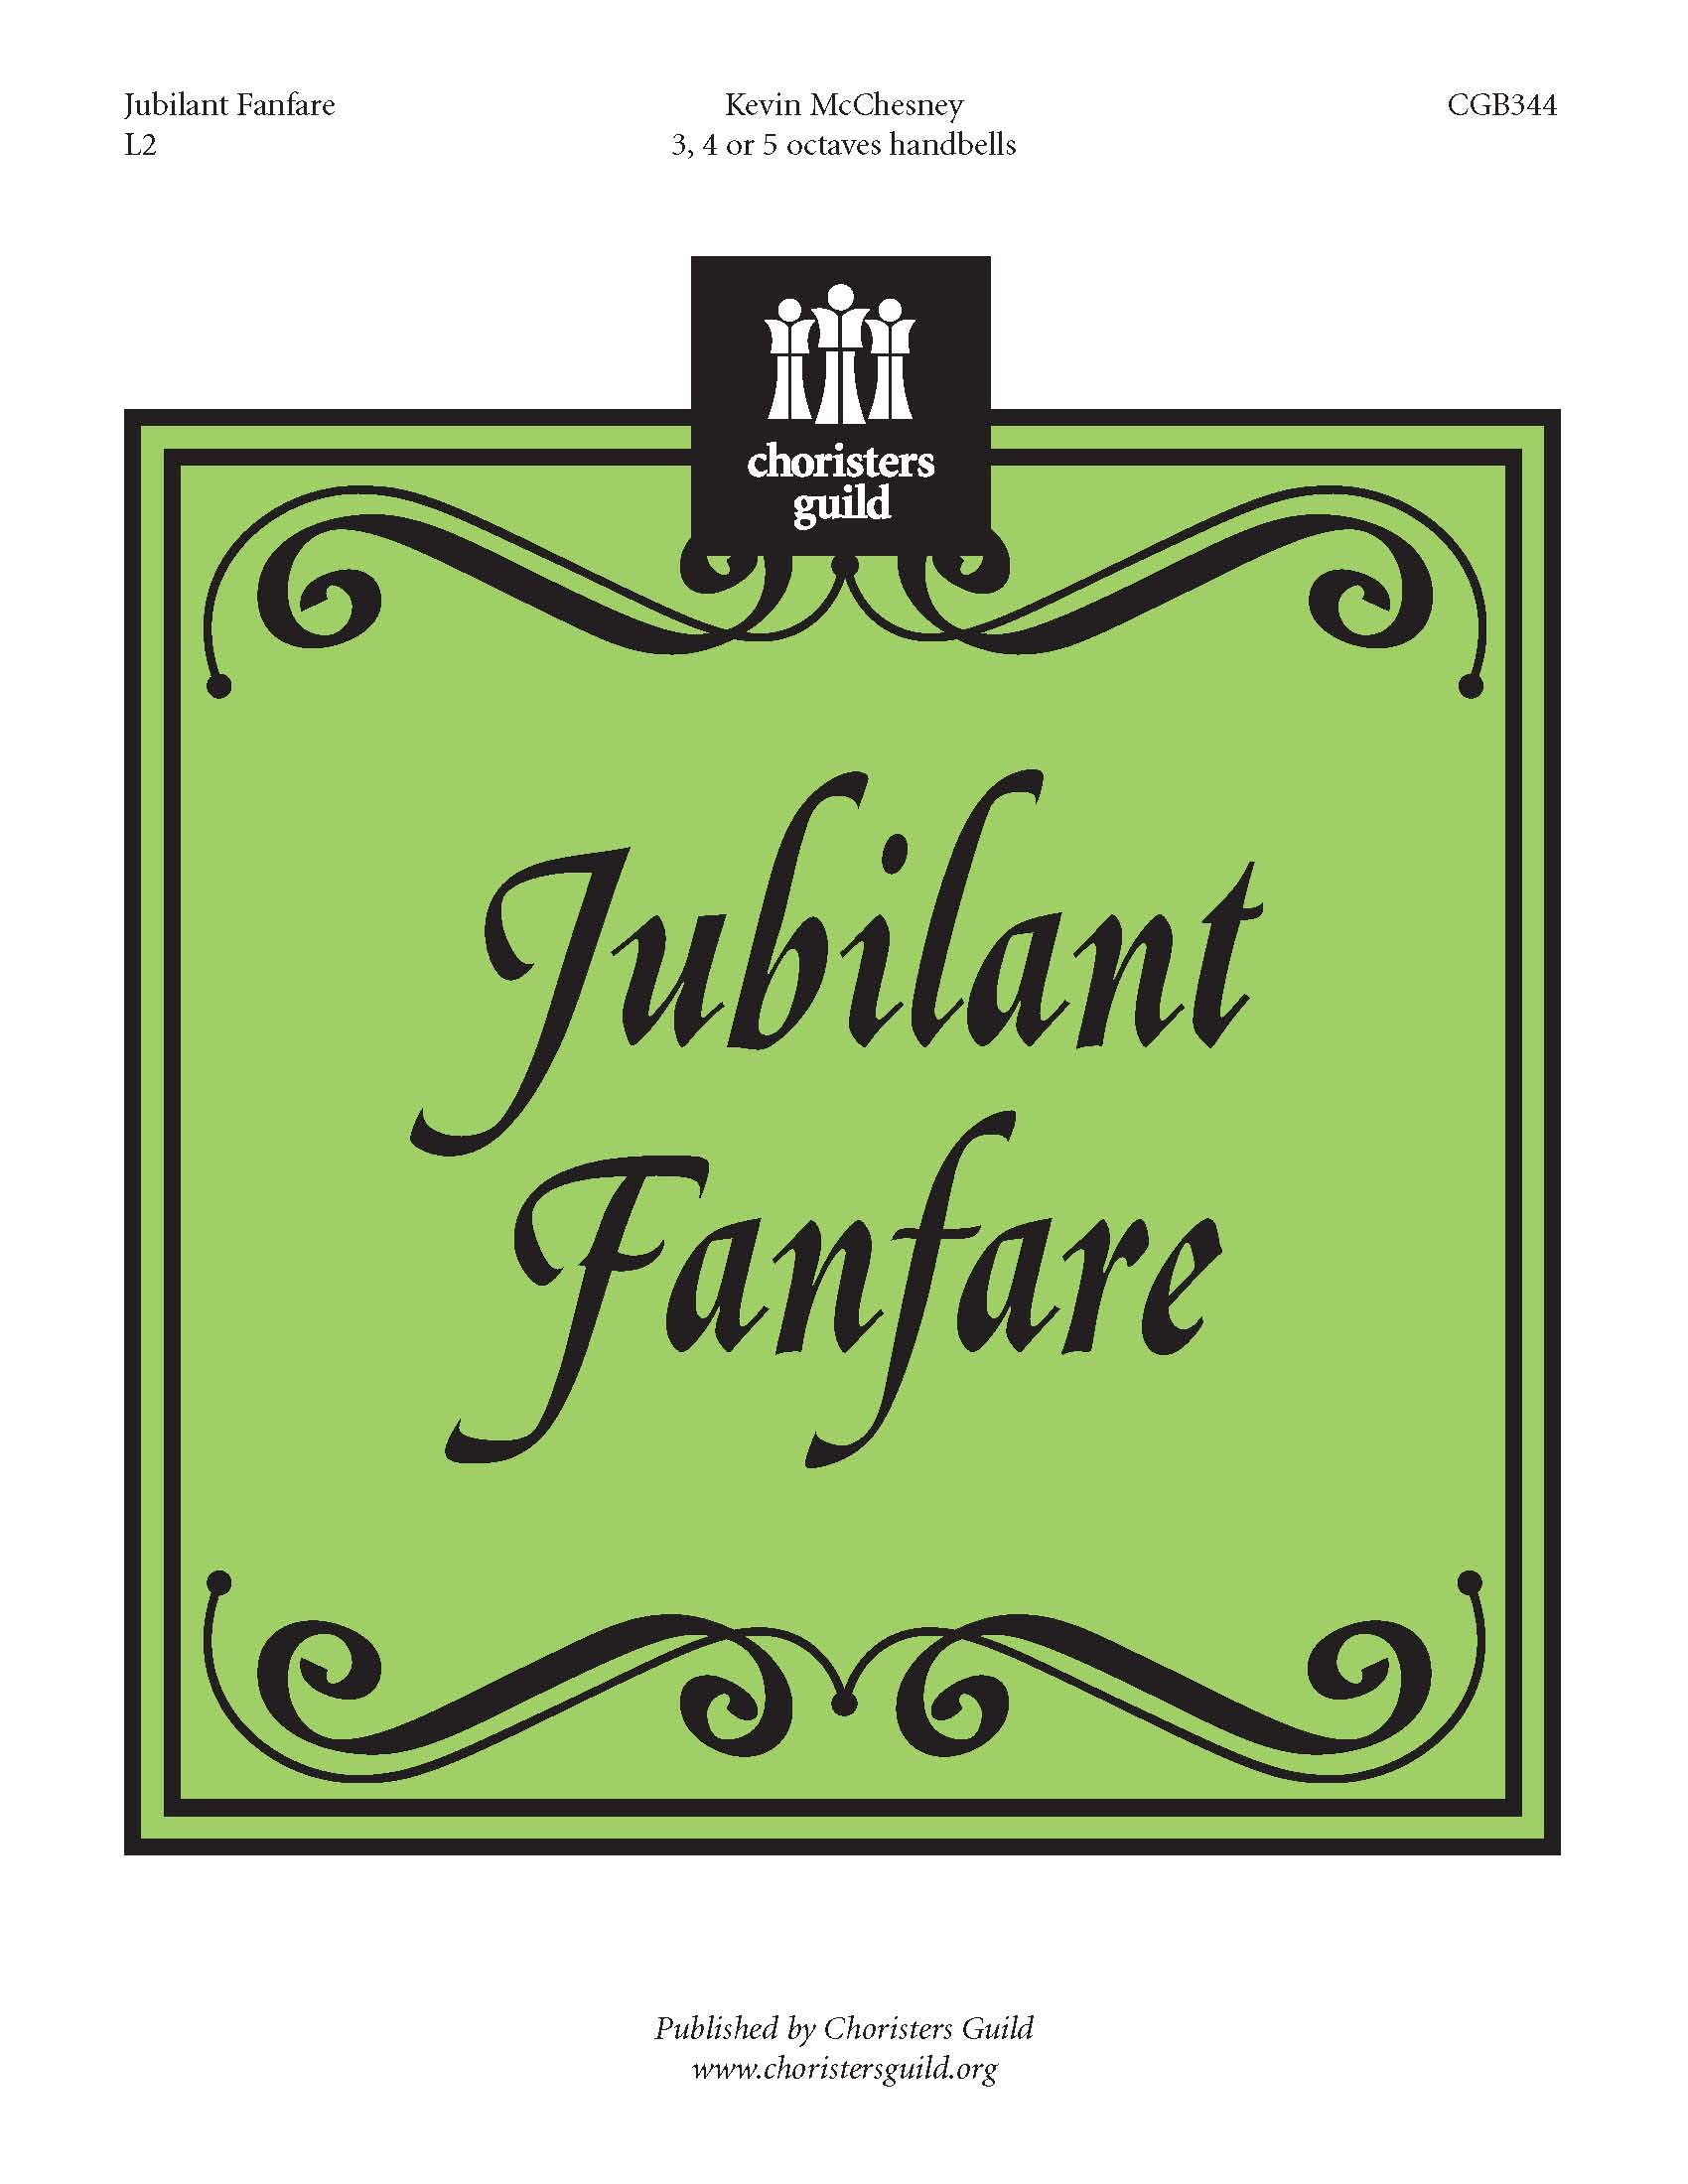 Jubilant Fanfare (3, 4 or 5 octaves)